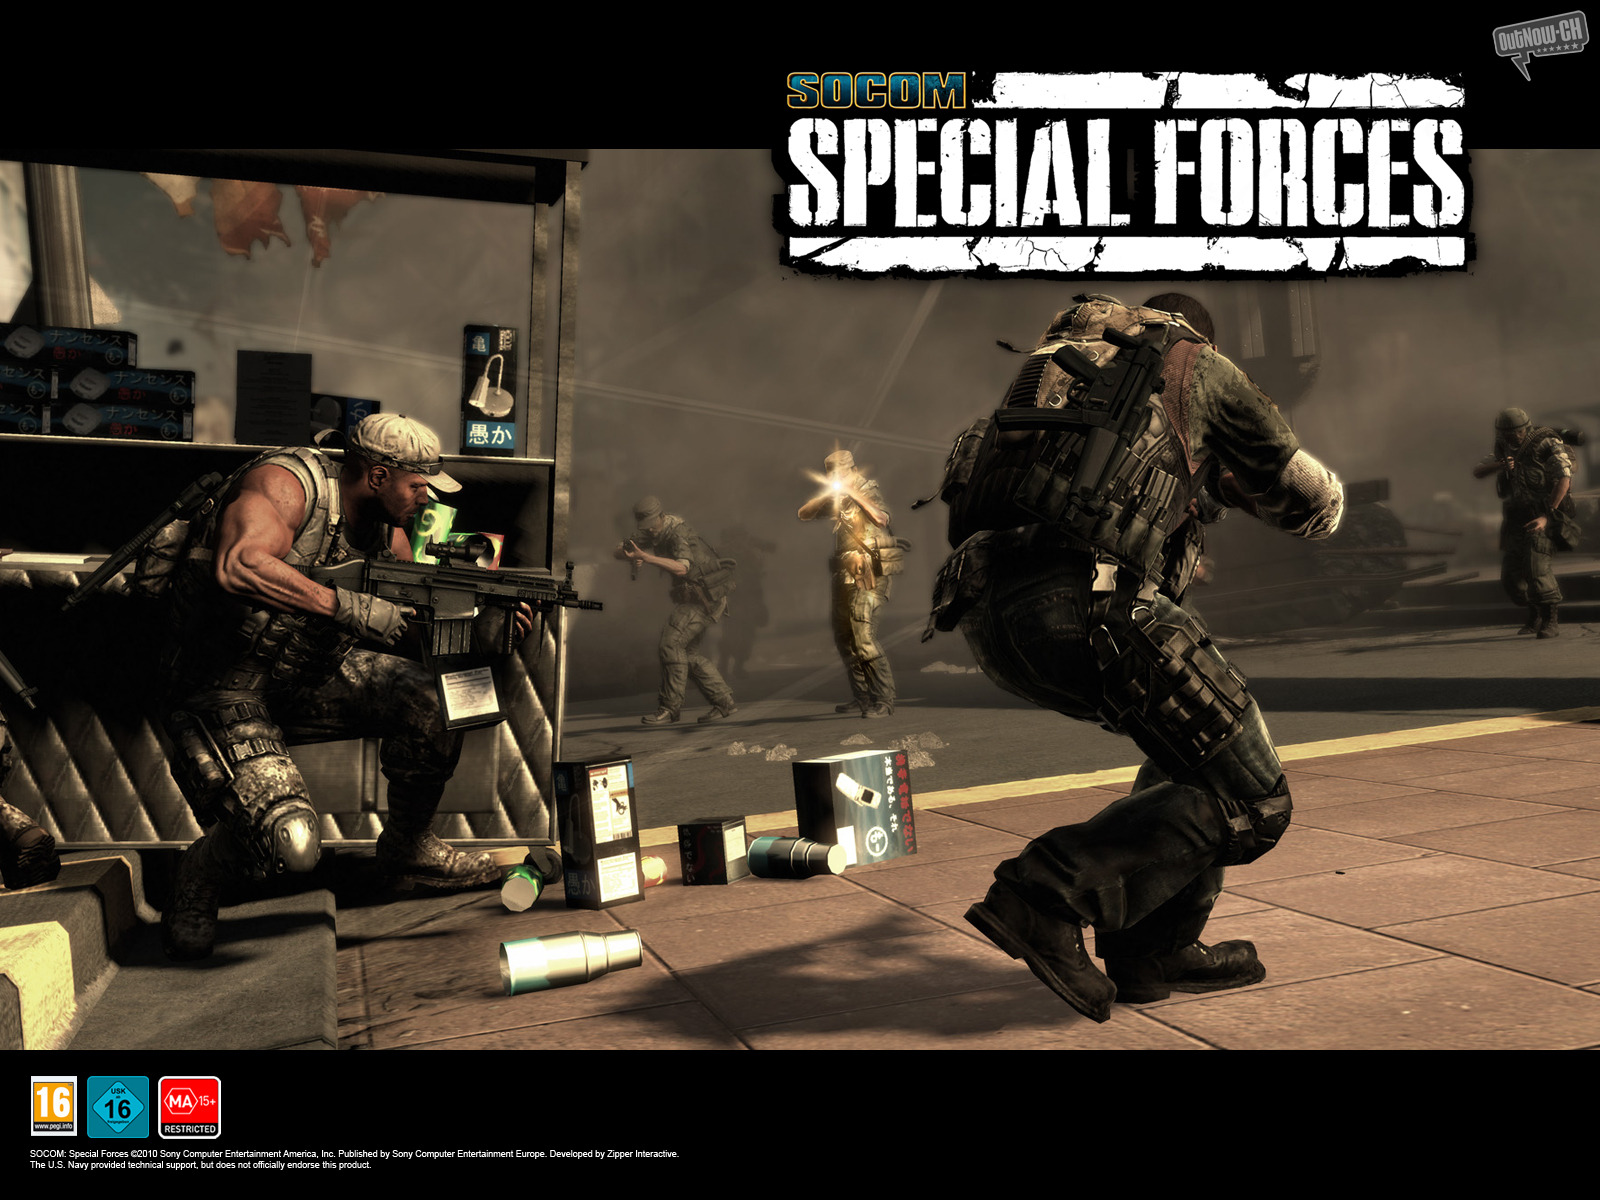 Socom Special Forces Wallpapers Socom Special Forces Stock Photos